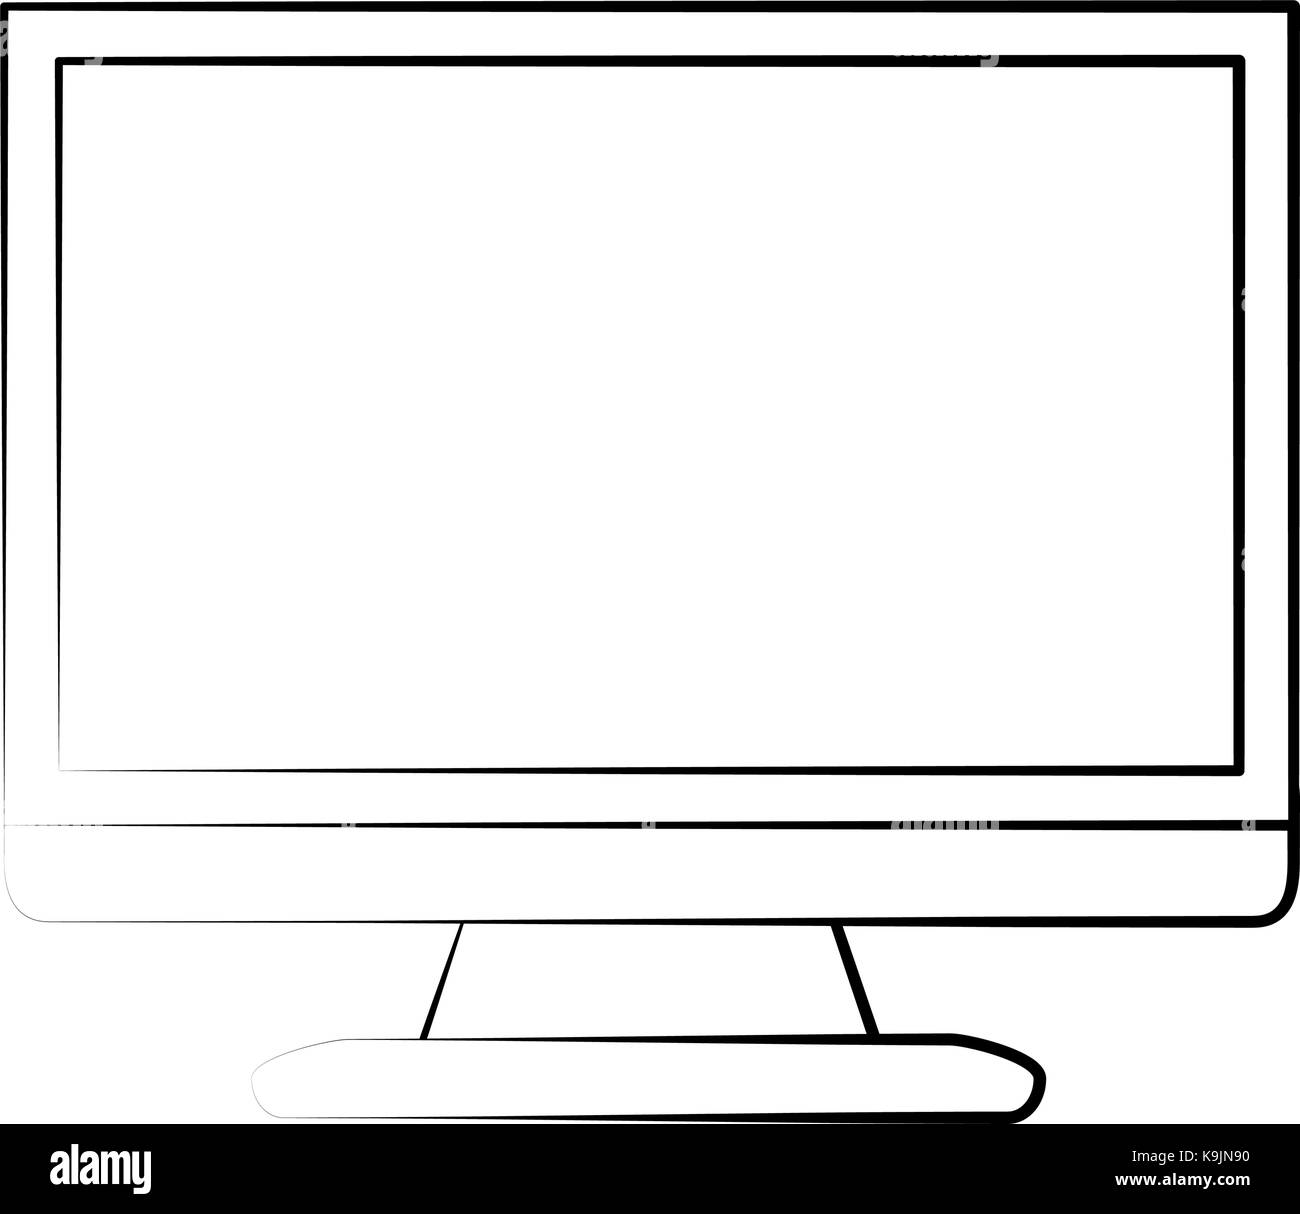 Computer monitor isolated - Stock Image